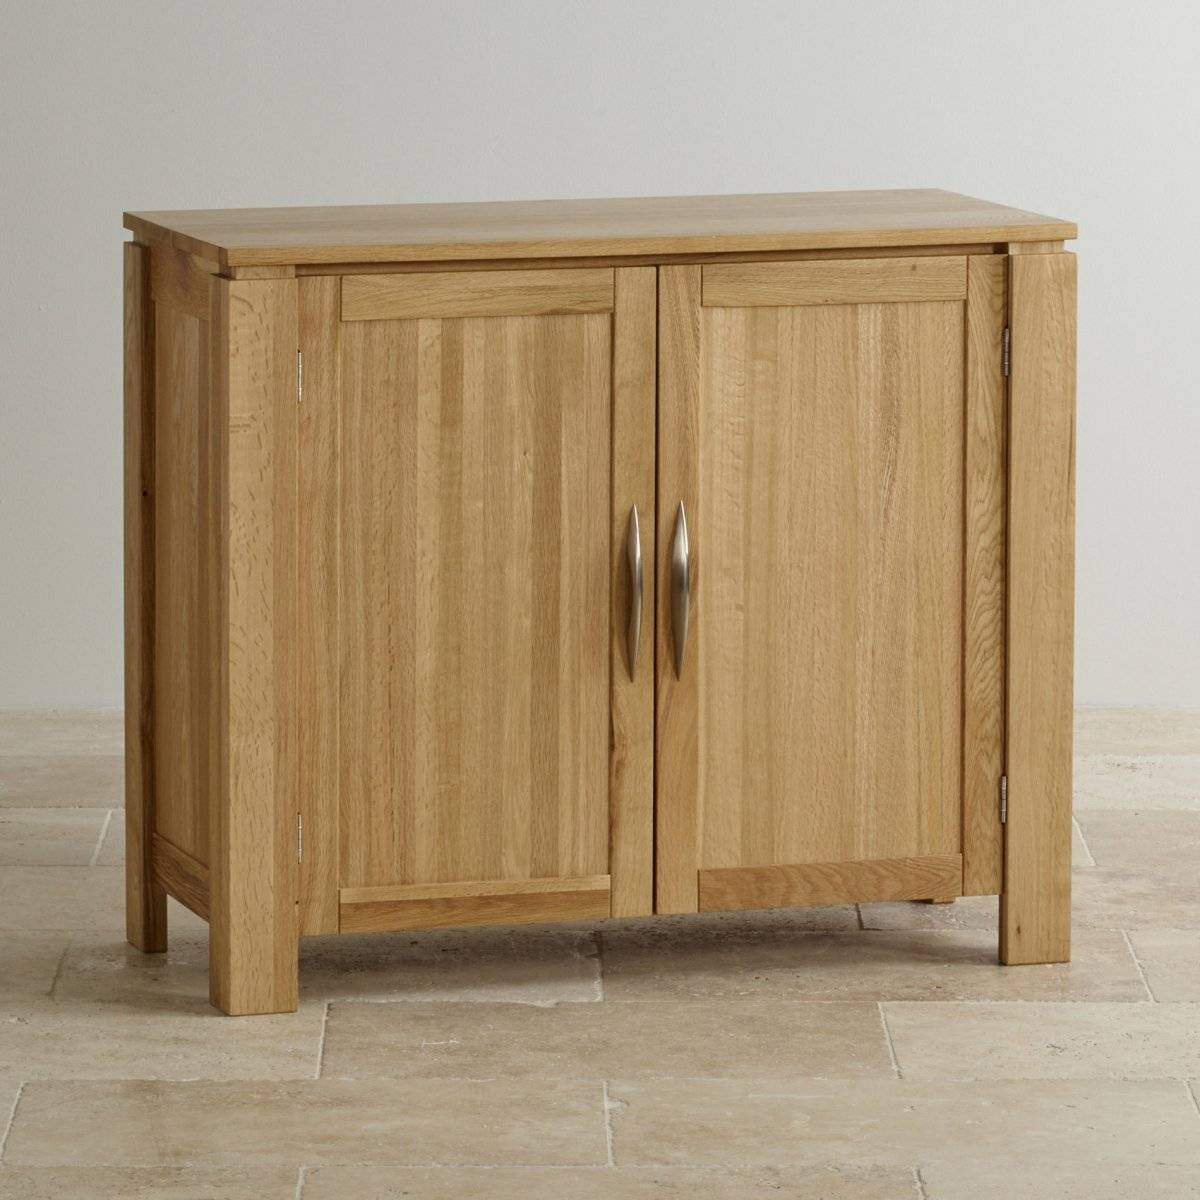 Galway Small Sideboard In Natural Solid Oak | Oak Furniture Land For Small Sideboard (#9 of 20)